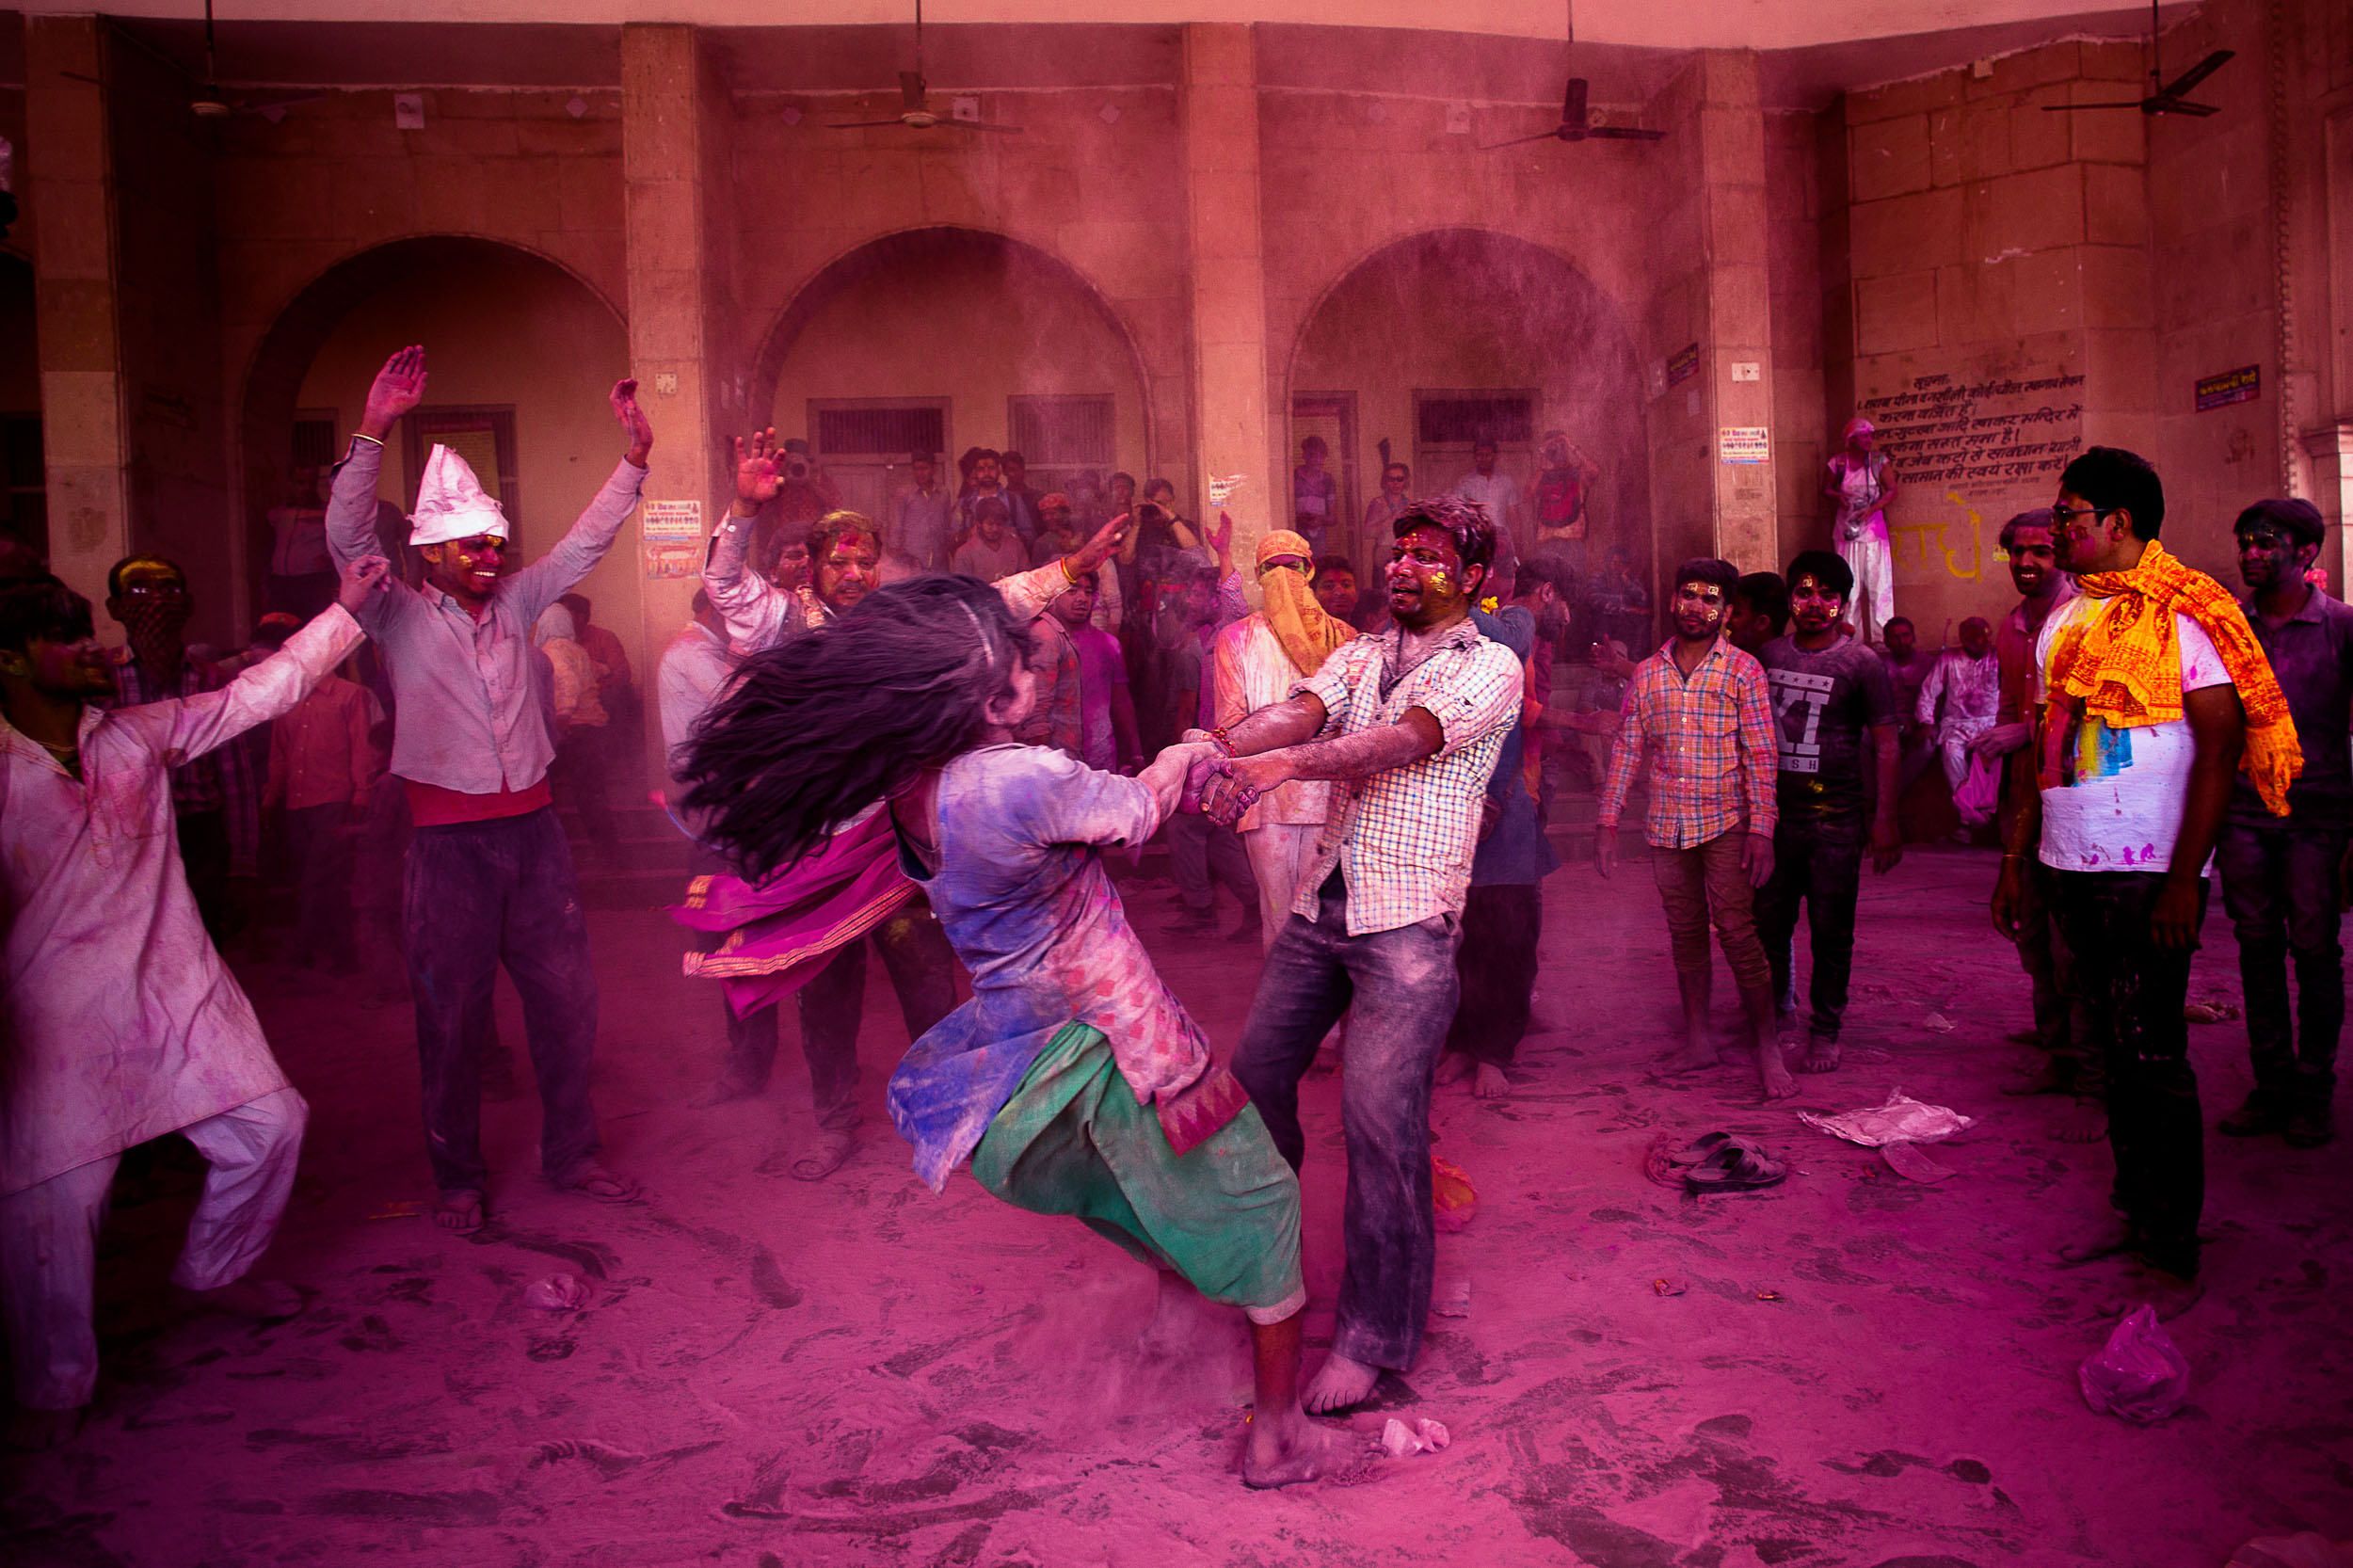 Sindhur_Photography_Travel_People_Holi-12.JPG